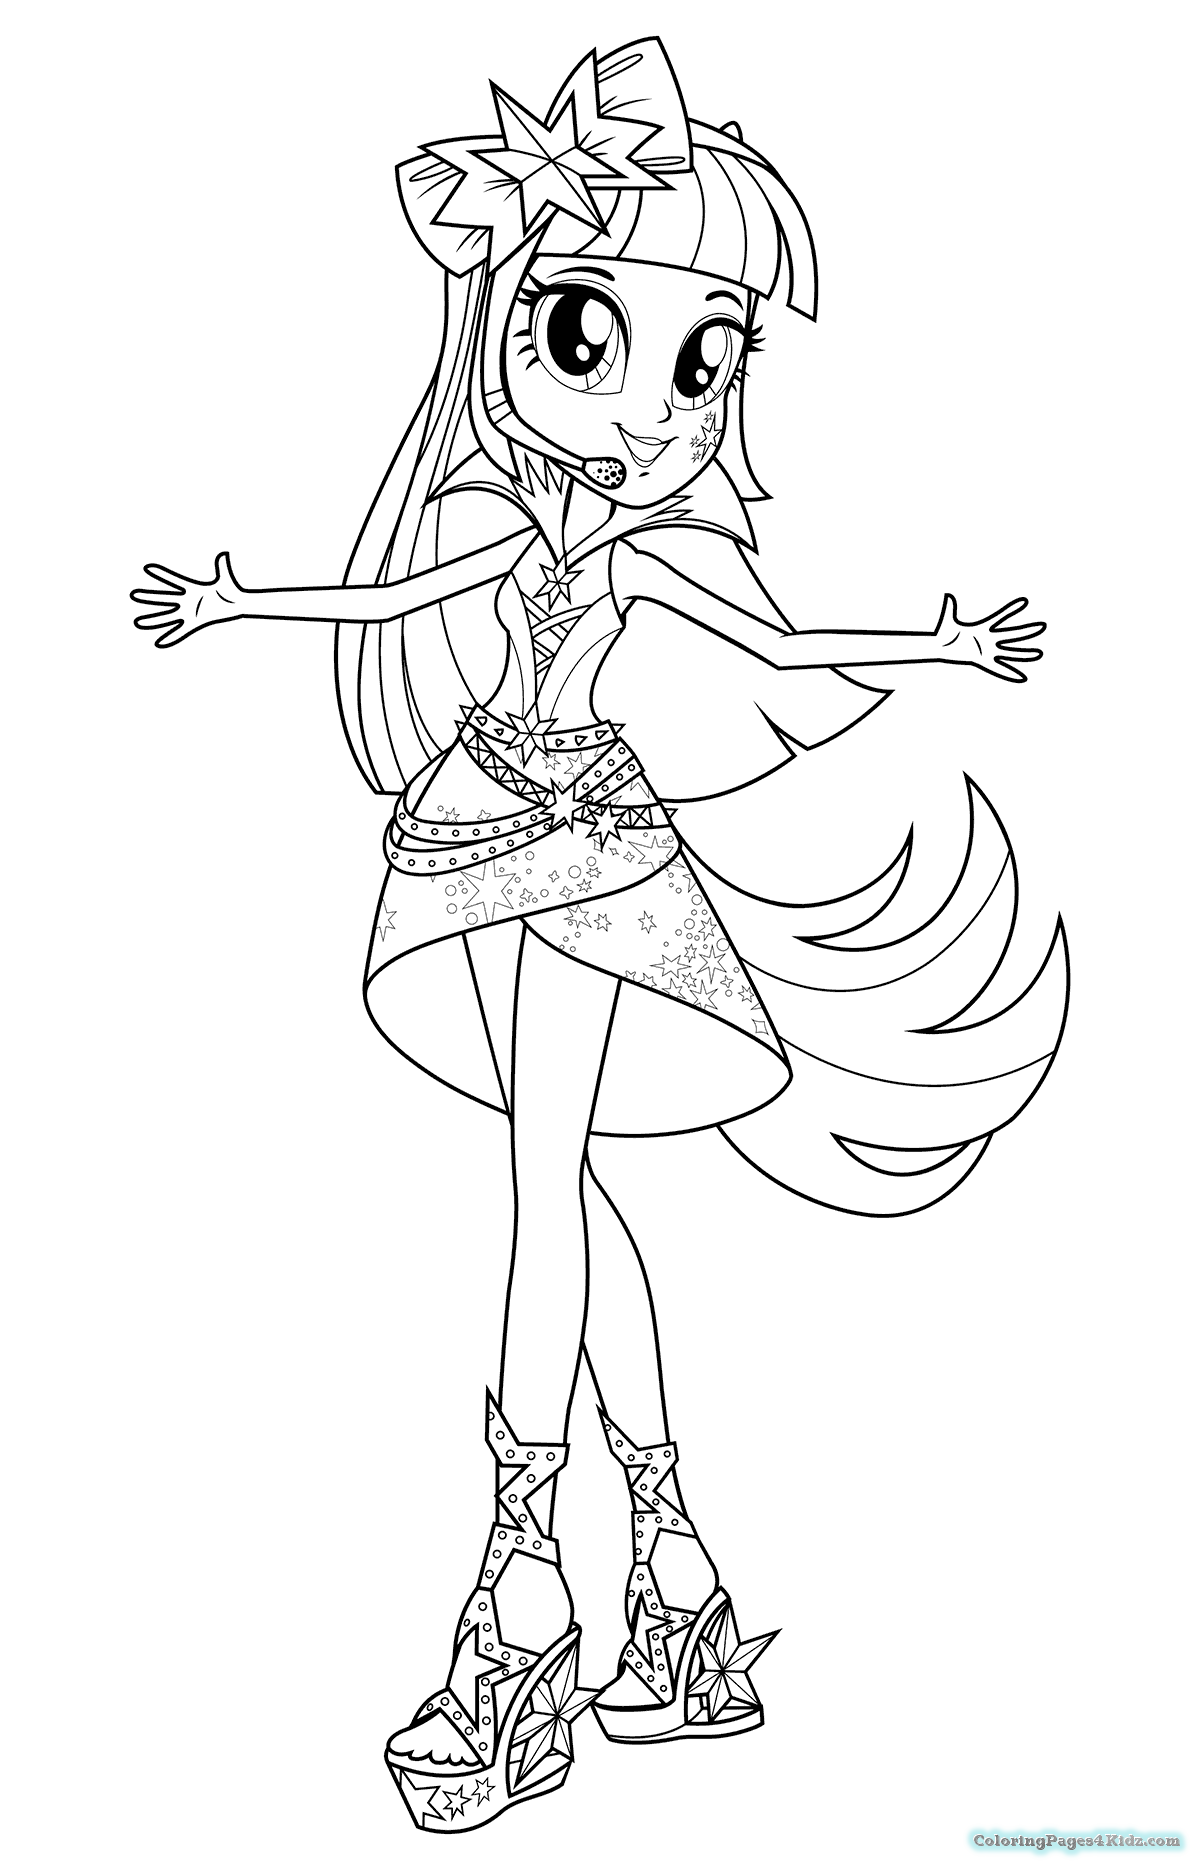 my little pony equestria girl coloring pages my little pony equestria girls coloring pages coloring home my girl equestria little coloring pony pages